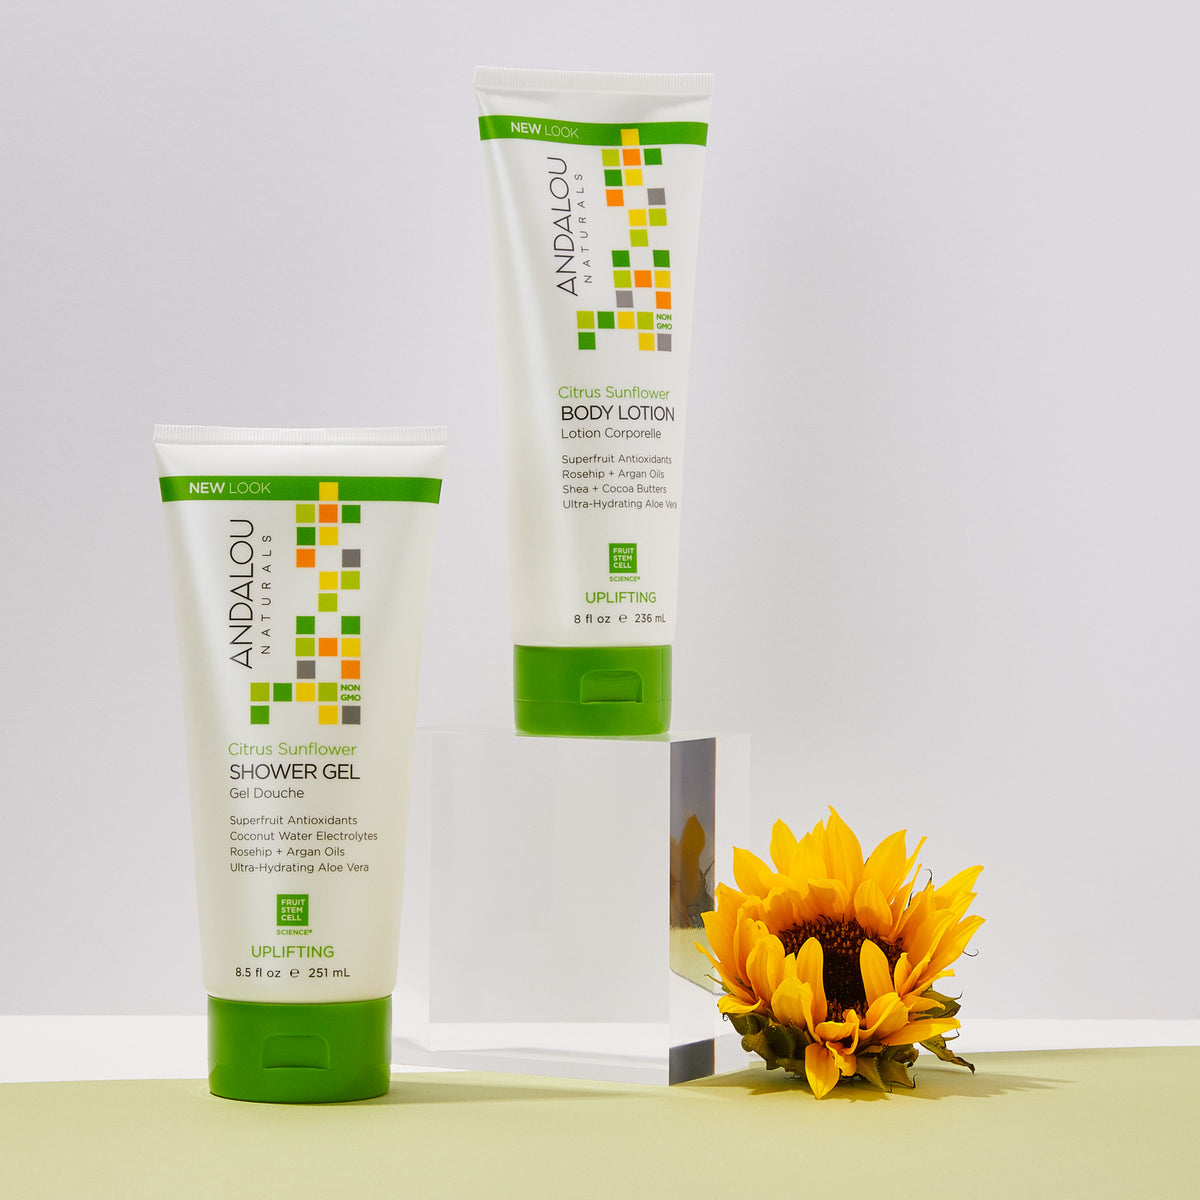 Andalou Naturals Citrus Sunflower Uplifting Body Lotion bottles with a sunflower